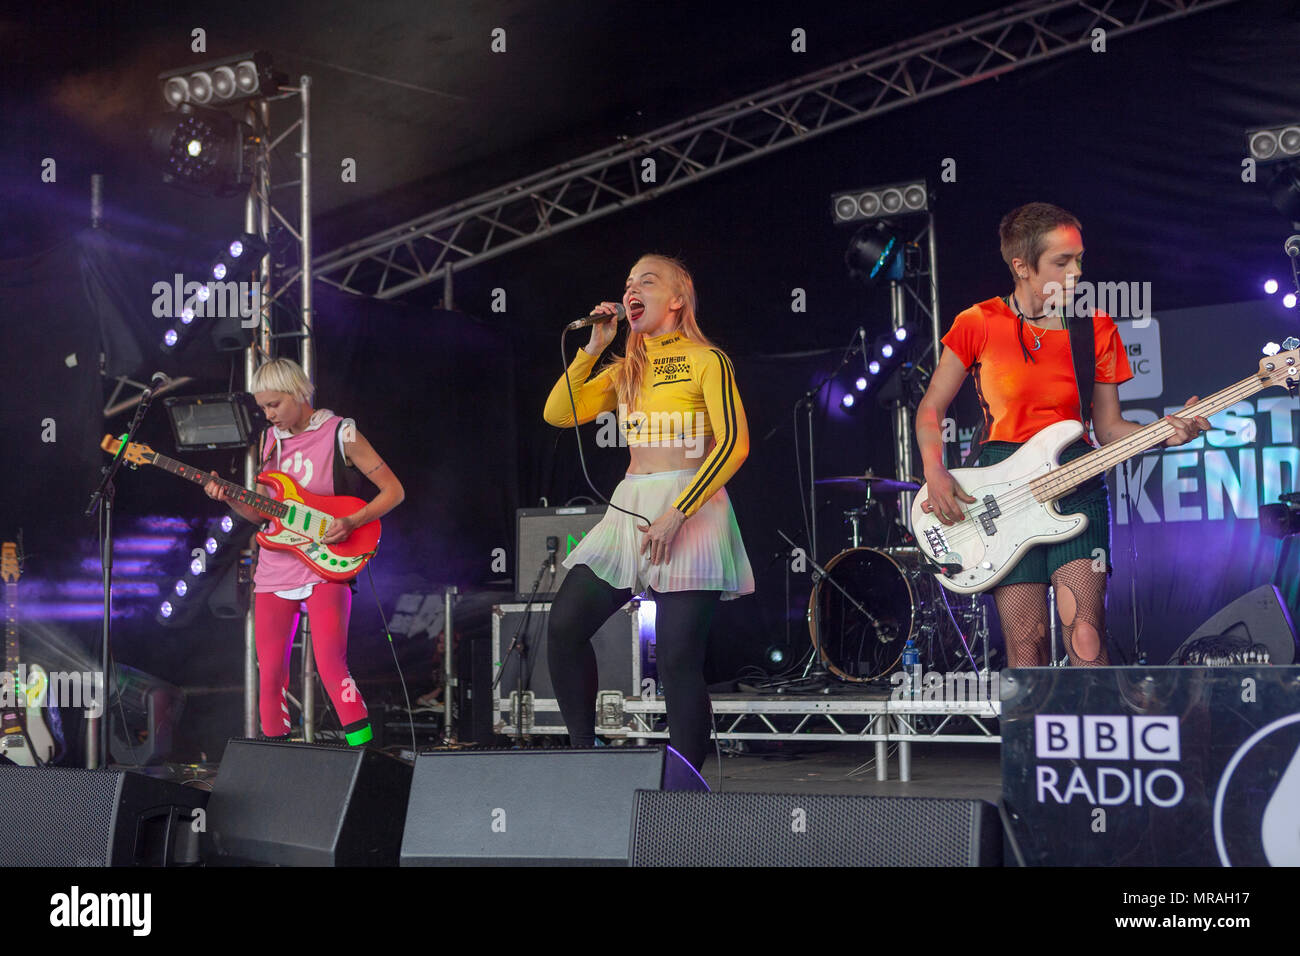 Dream Wife is a British punk rock band originally from Brighton consisting of Rakel Mjöll, Alice Go, and Bella Podpadec. Their debut album Dream Wife was released on 26 January 2018. They performed songs from that album at BBC6 Music's Biggest Weekend event held at Belfast's Titanic Slipway, Northern Ireland. 26 May 2018. Credit: Darron Mark/Alamy Live News Stock Photo